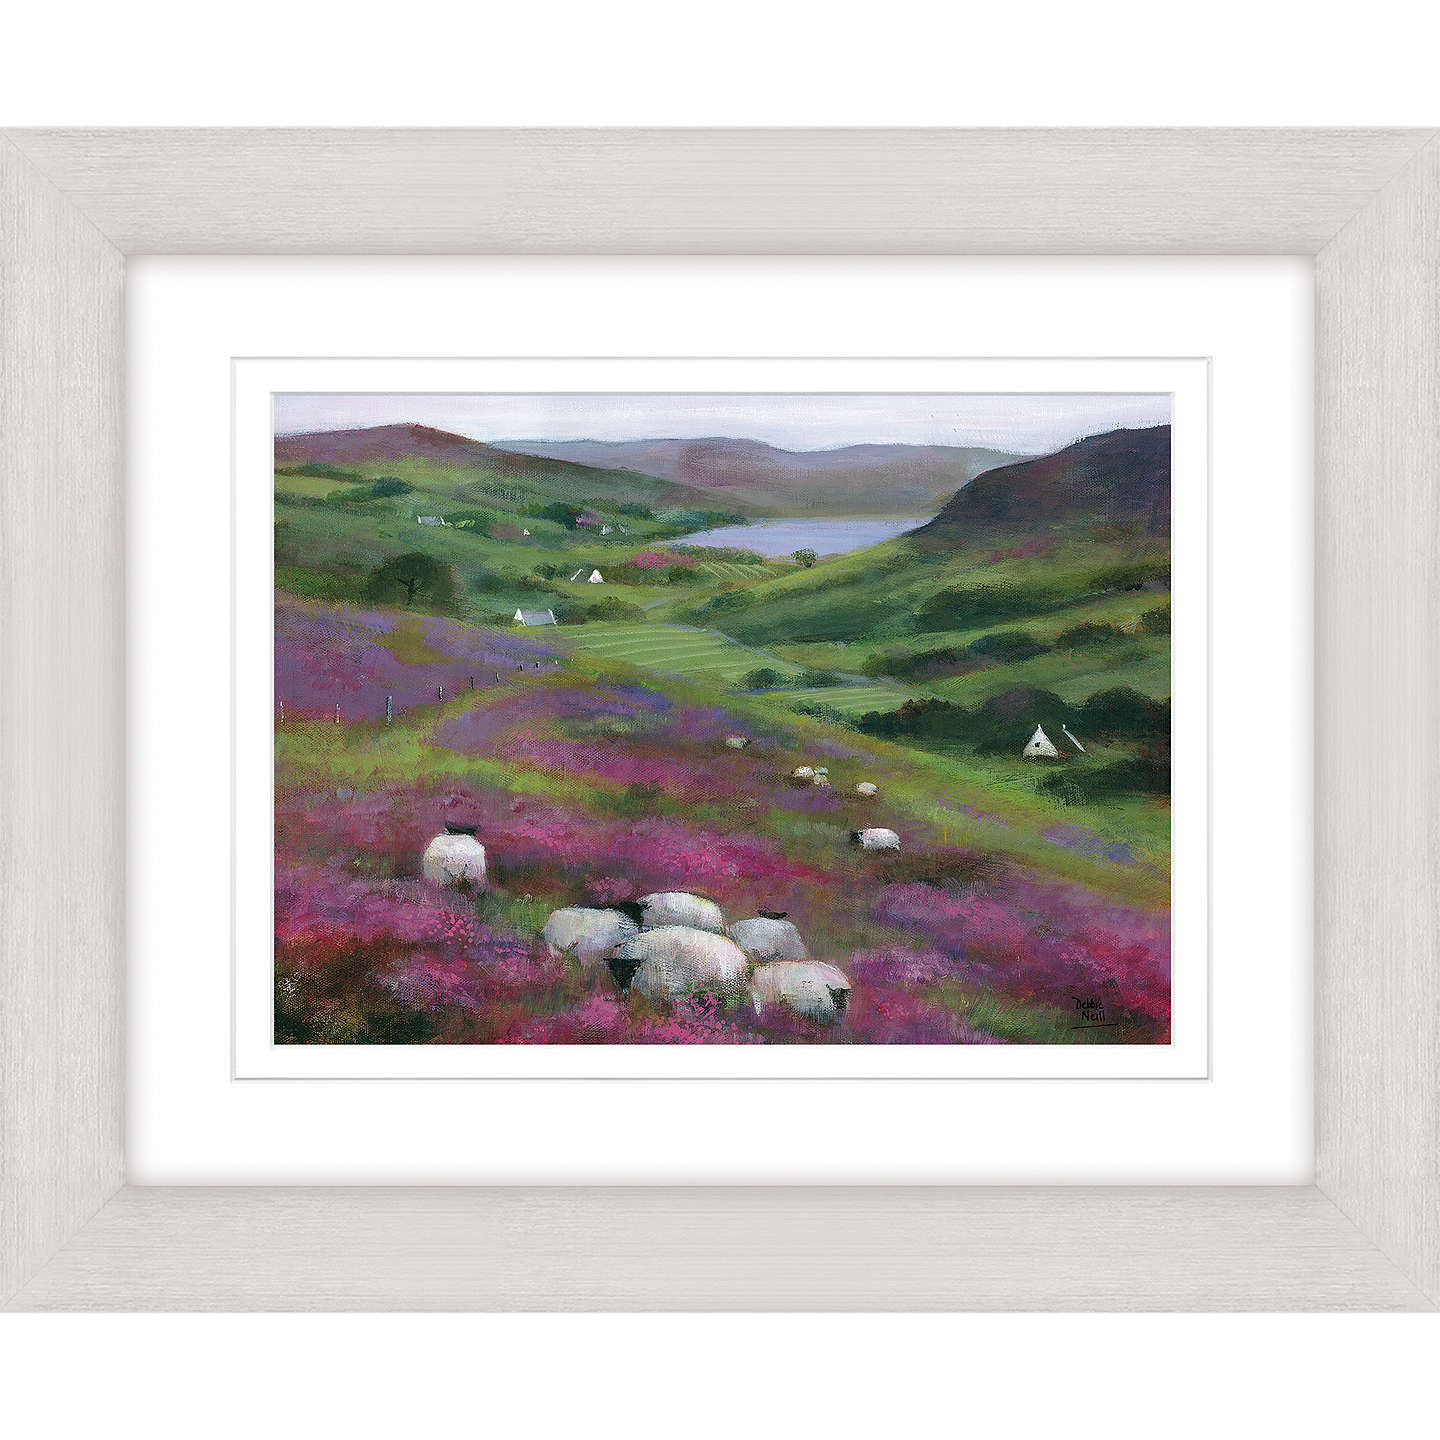 BuyDebbie Neill - Heather Sheep Framed Print, 47 x 57cm Online at johnlewis.com